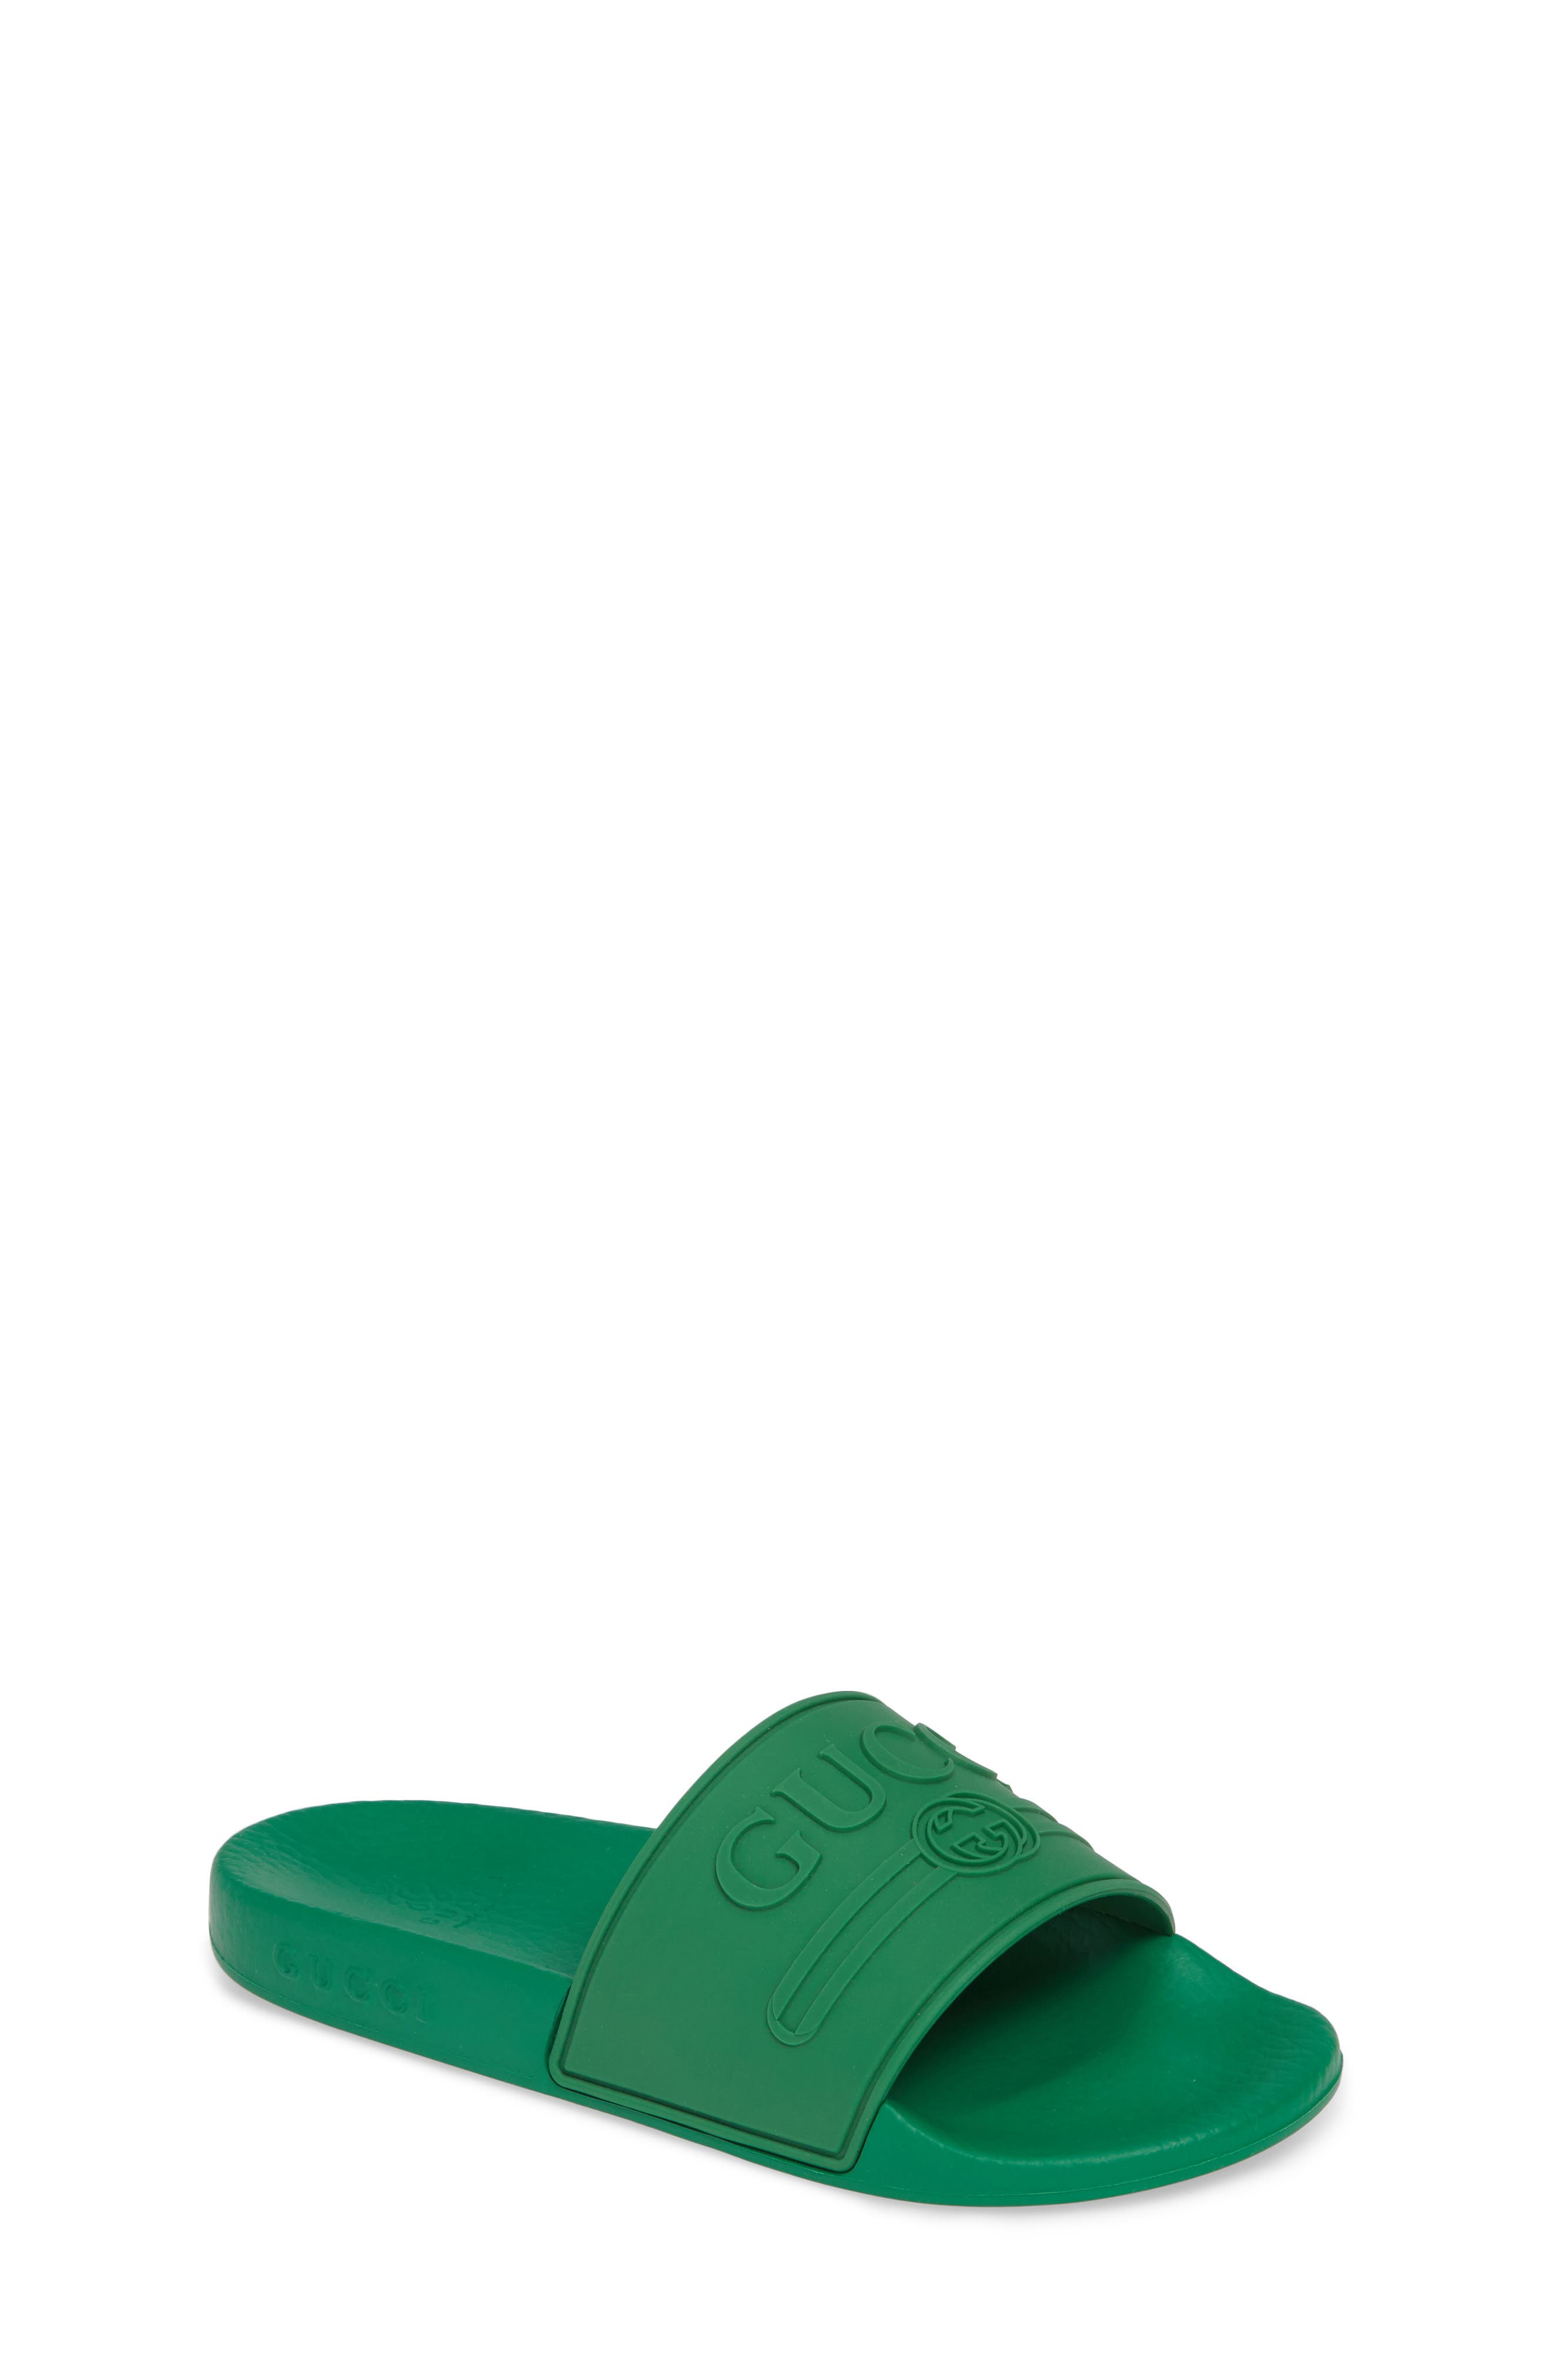 GUCCI Pursuit Logo Slide Sandal, Main, color, SHAMROCK